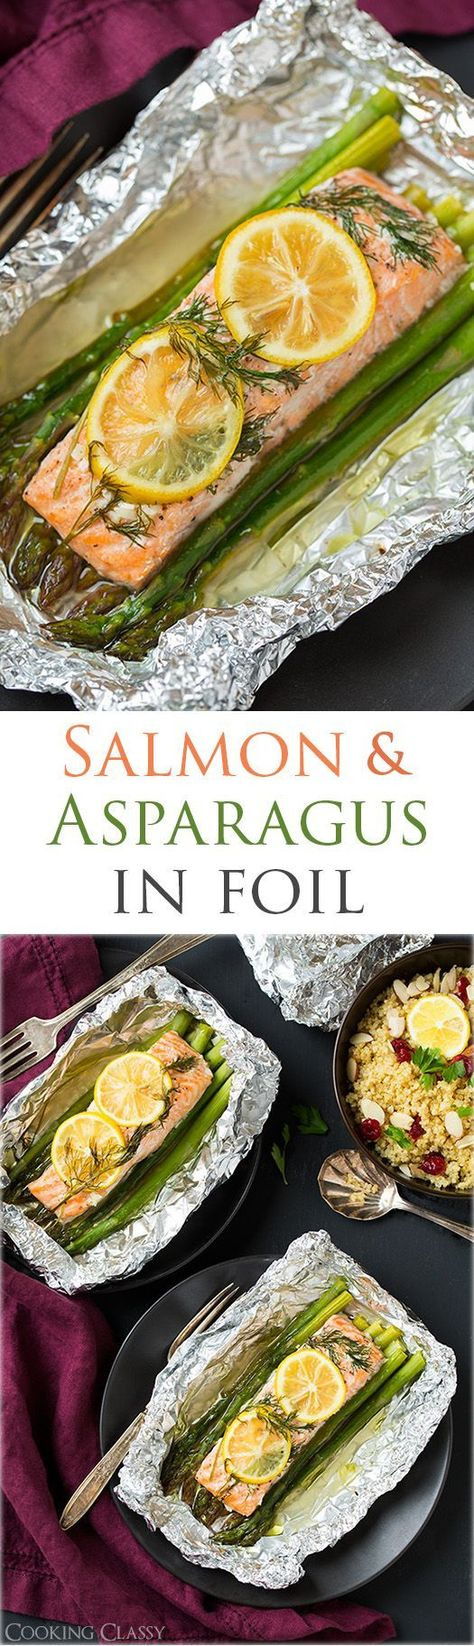 Baked Salmon in Foil (with Asparagus) - Cooking Classy